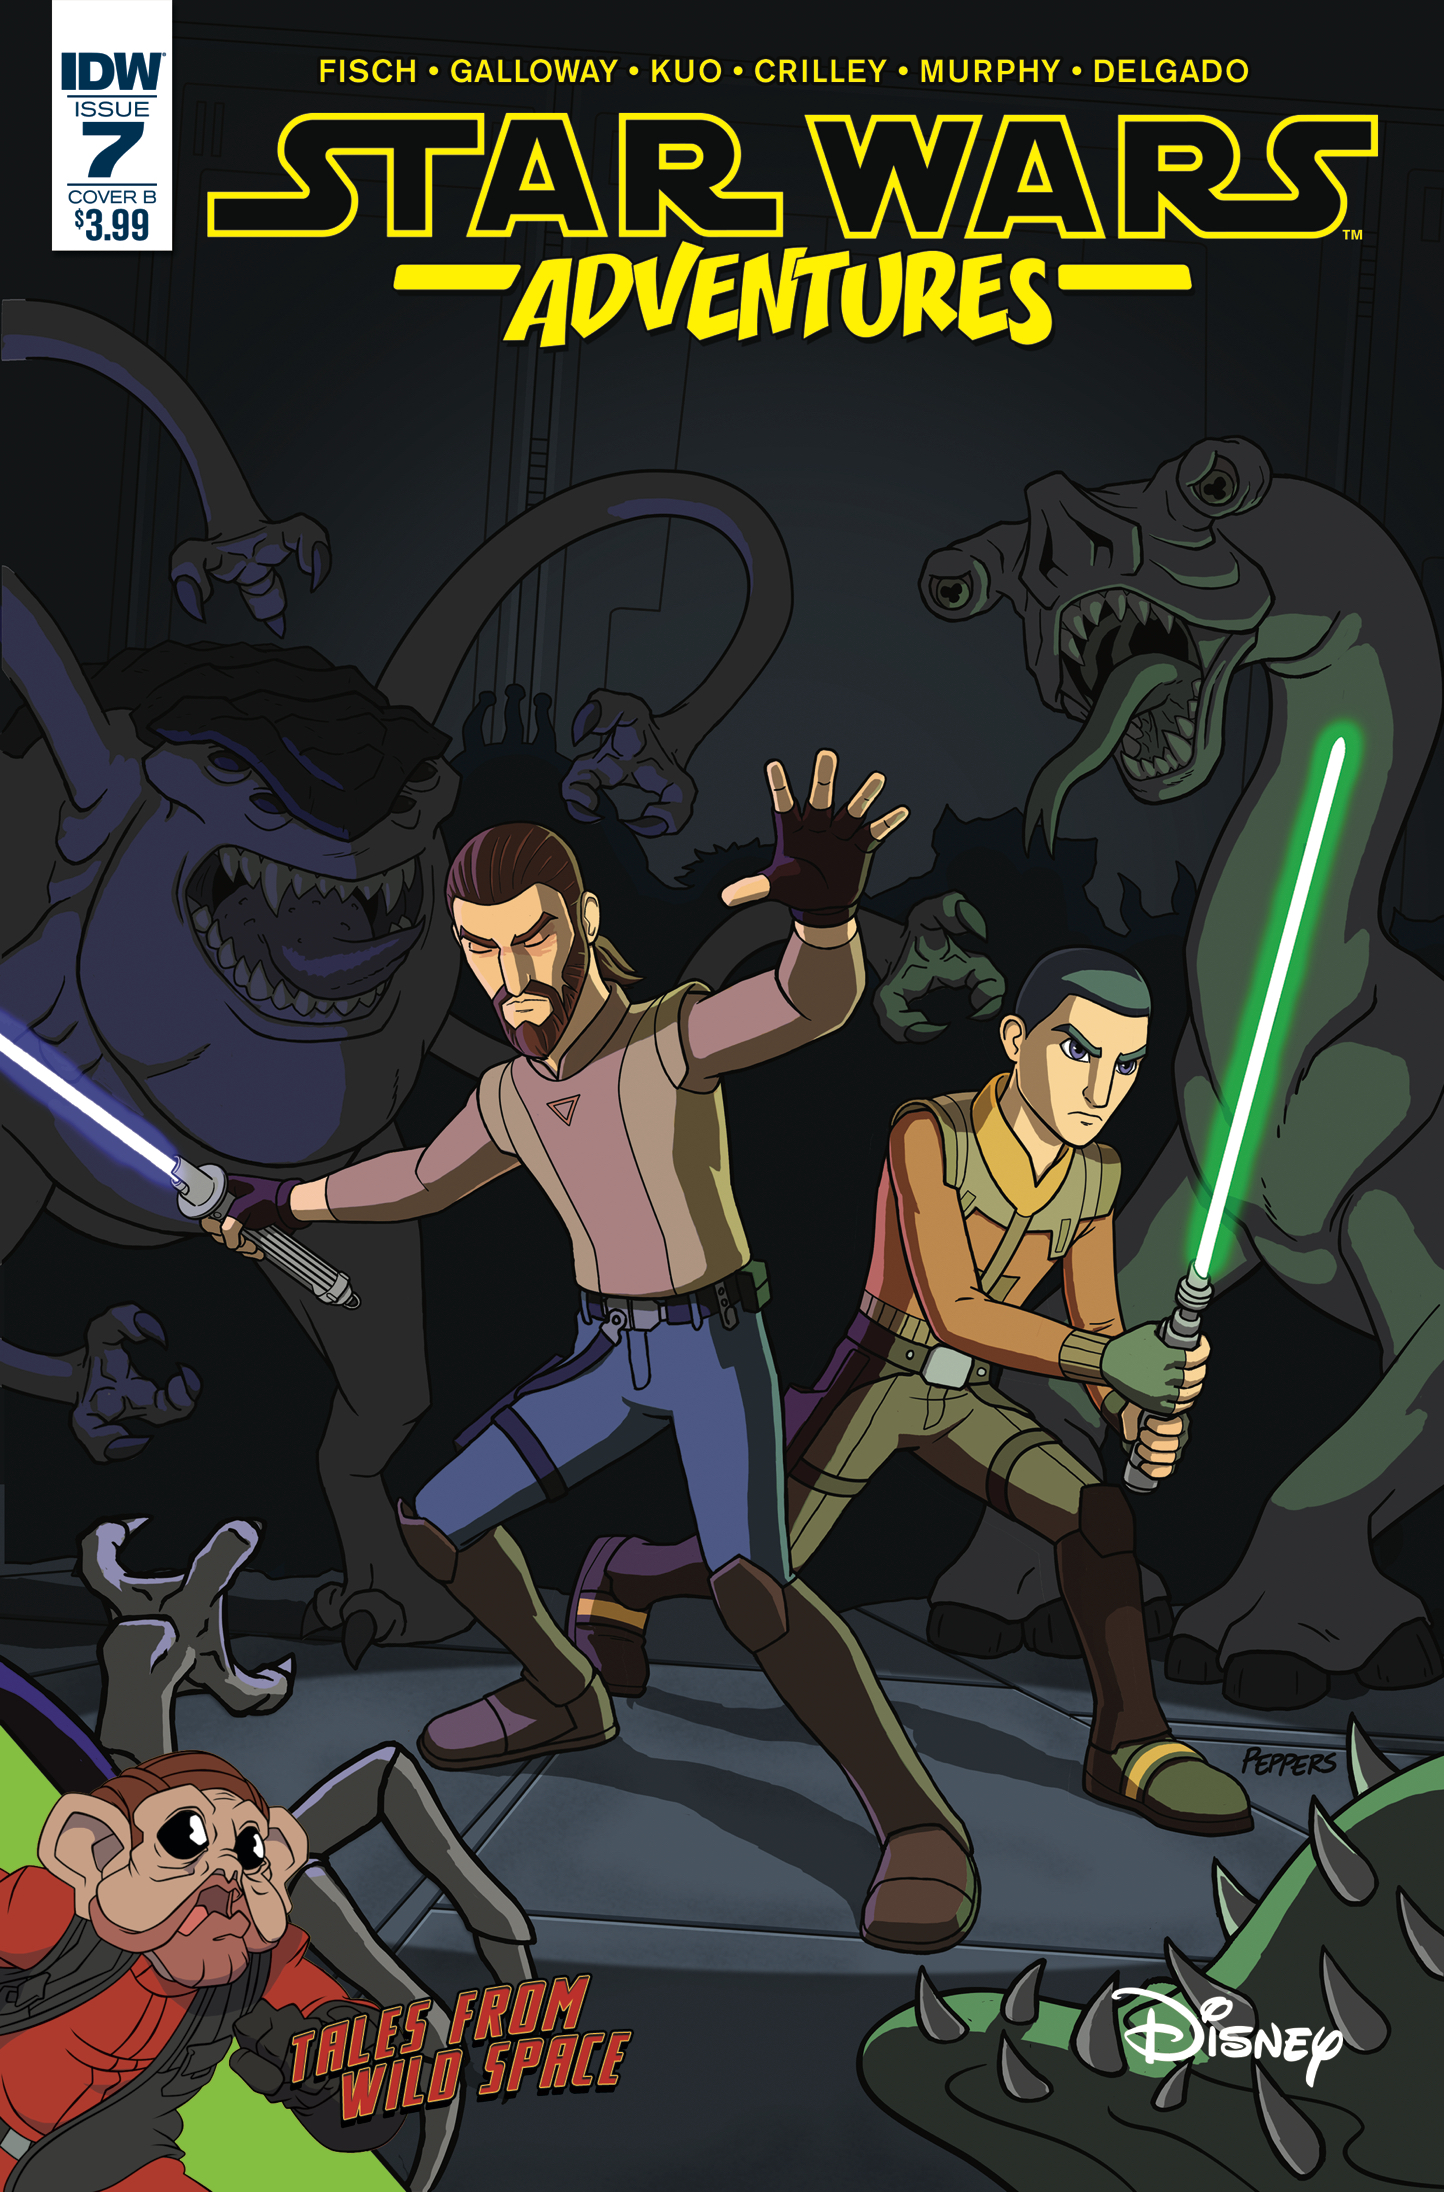 Star Wars Adventures #7 (Cover B by Jamal Peppers) (14.02.2018)